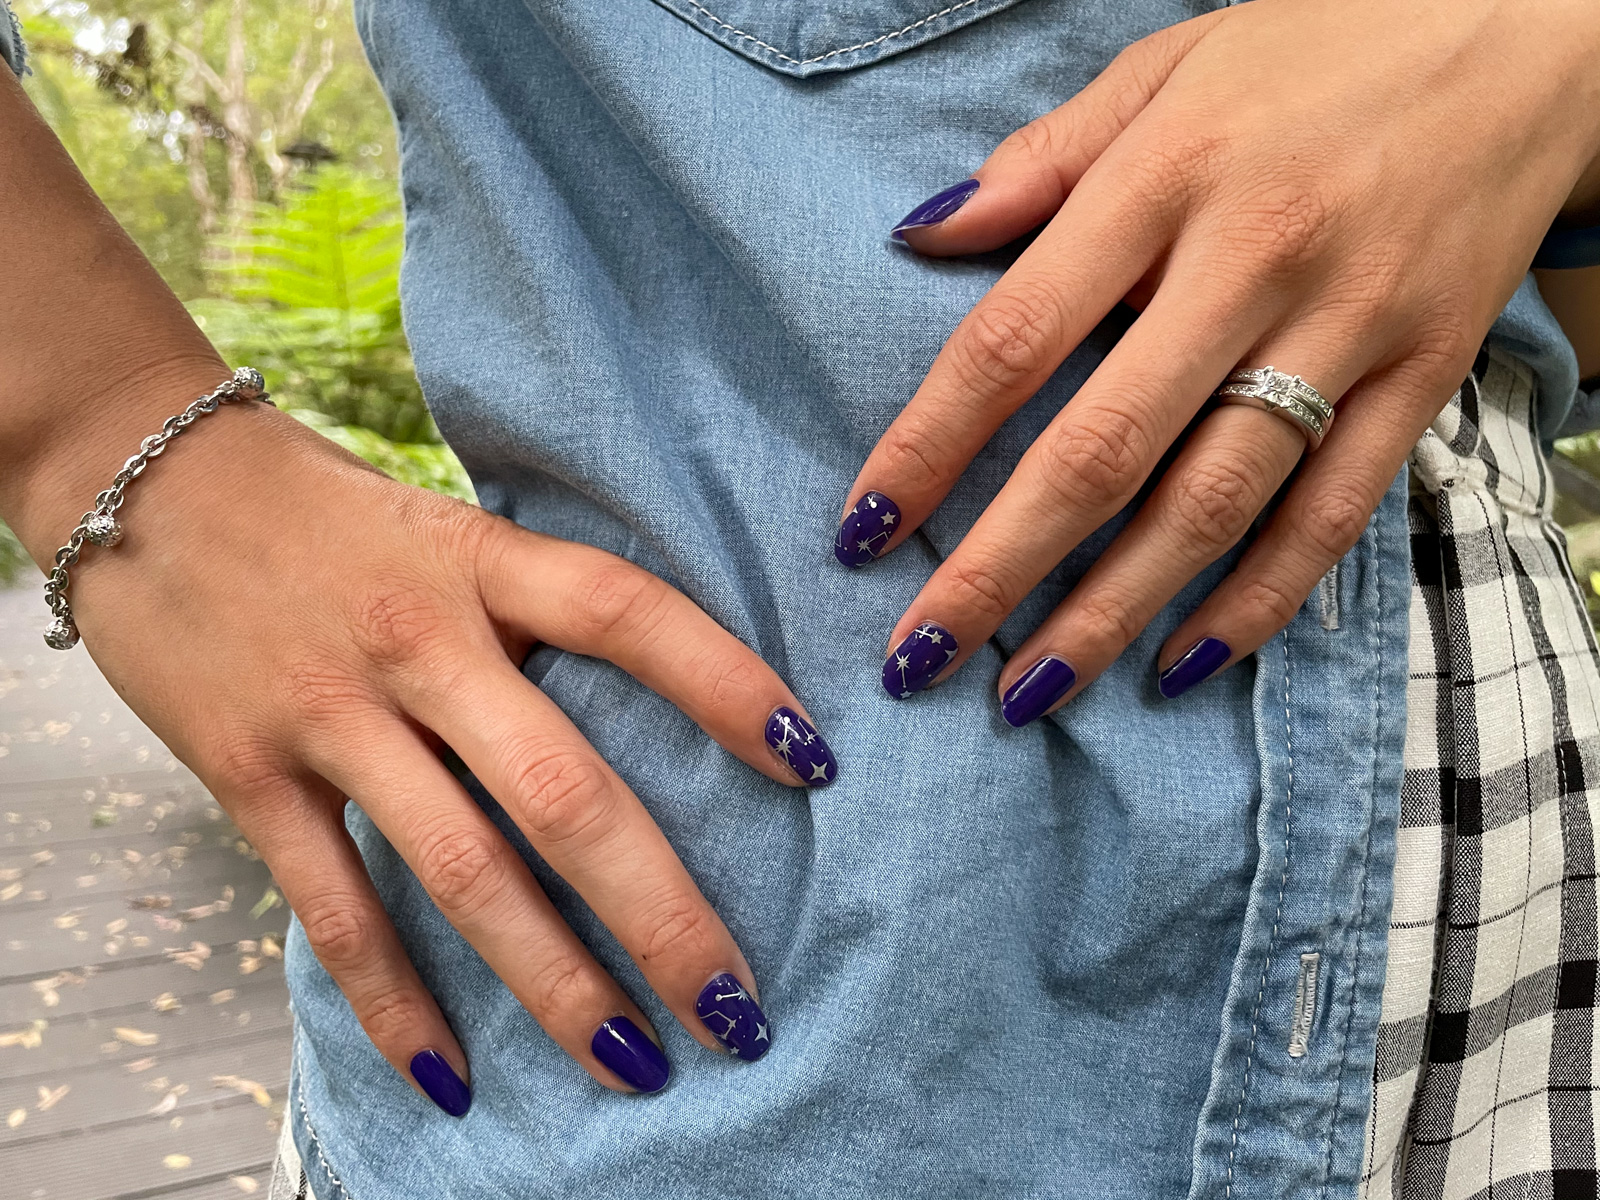 A close-up of a woman's fingernails, with dark blue nail wraps applied. Some of the nails have a silver starry pattern on them.